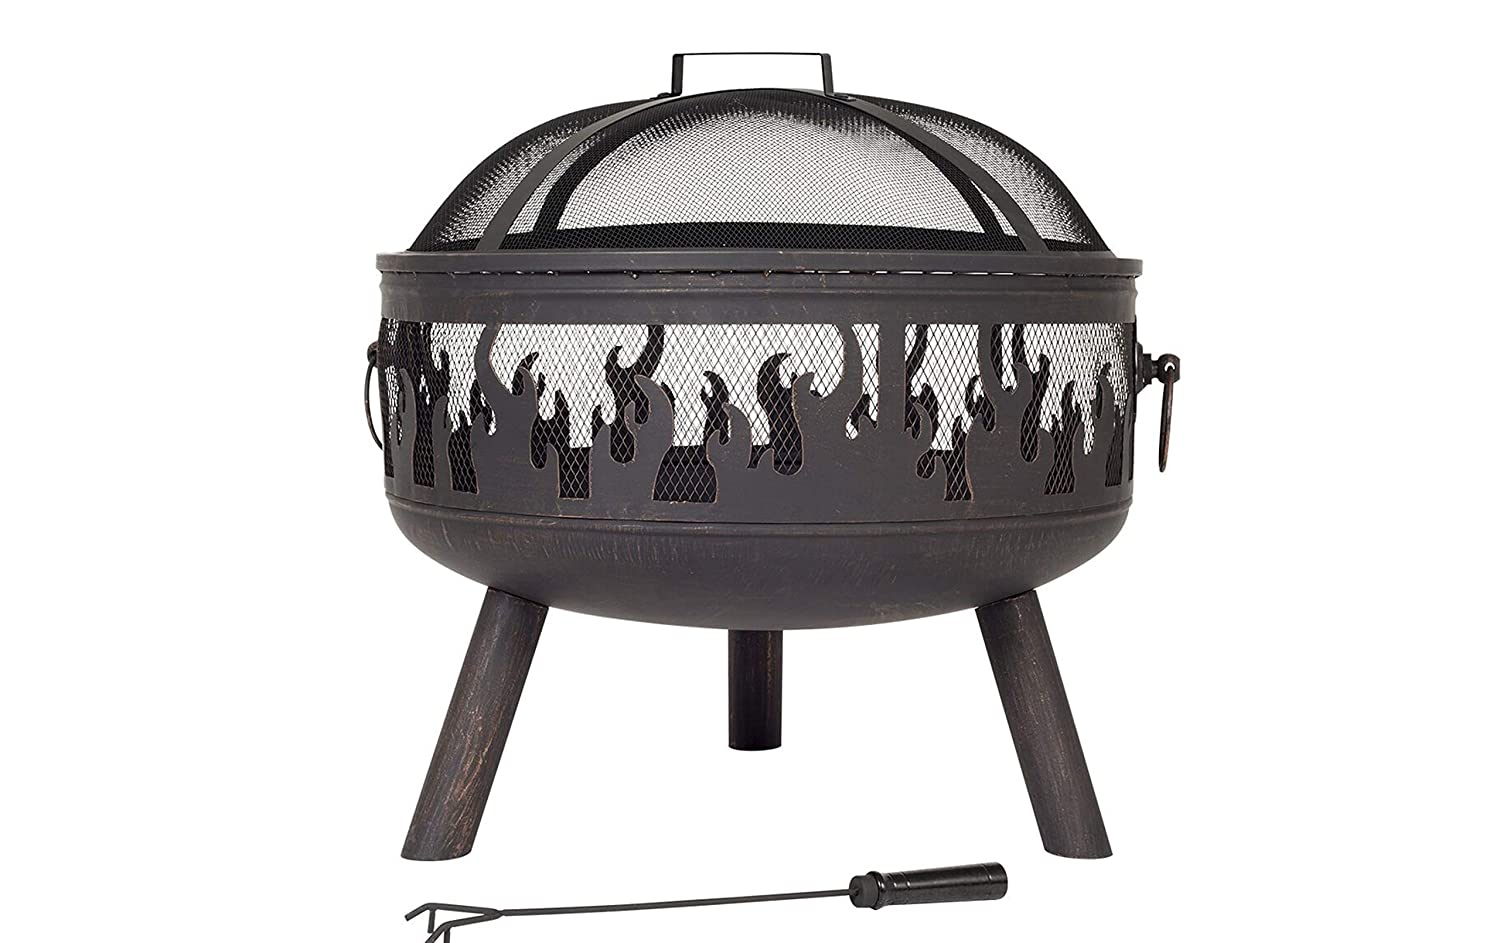 La Hacienda Wildfire Steel Firebowl with Bronze Finish & Spark Guard. Firepit